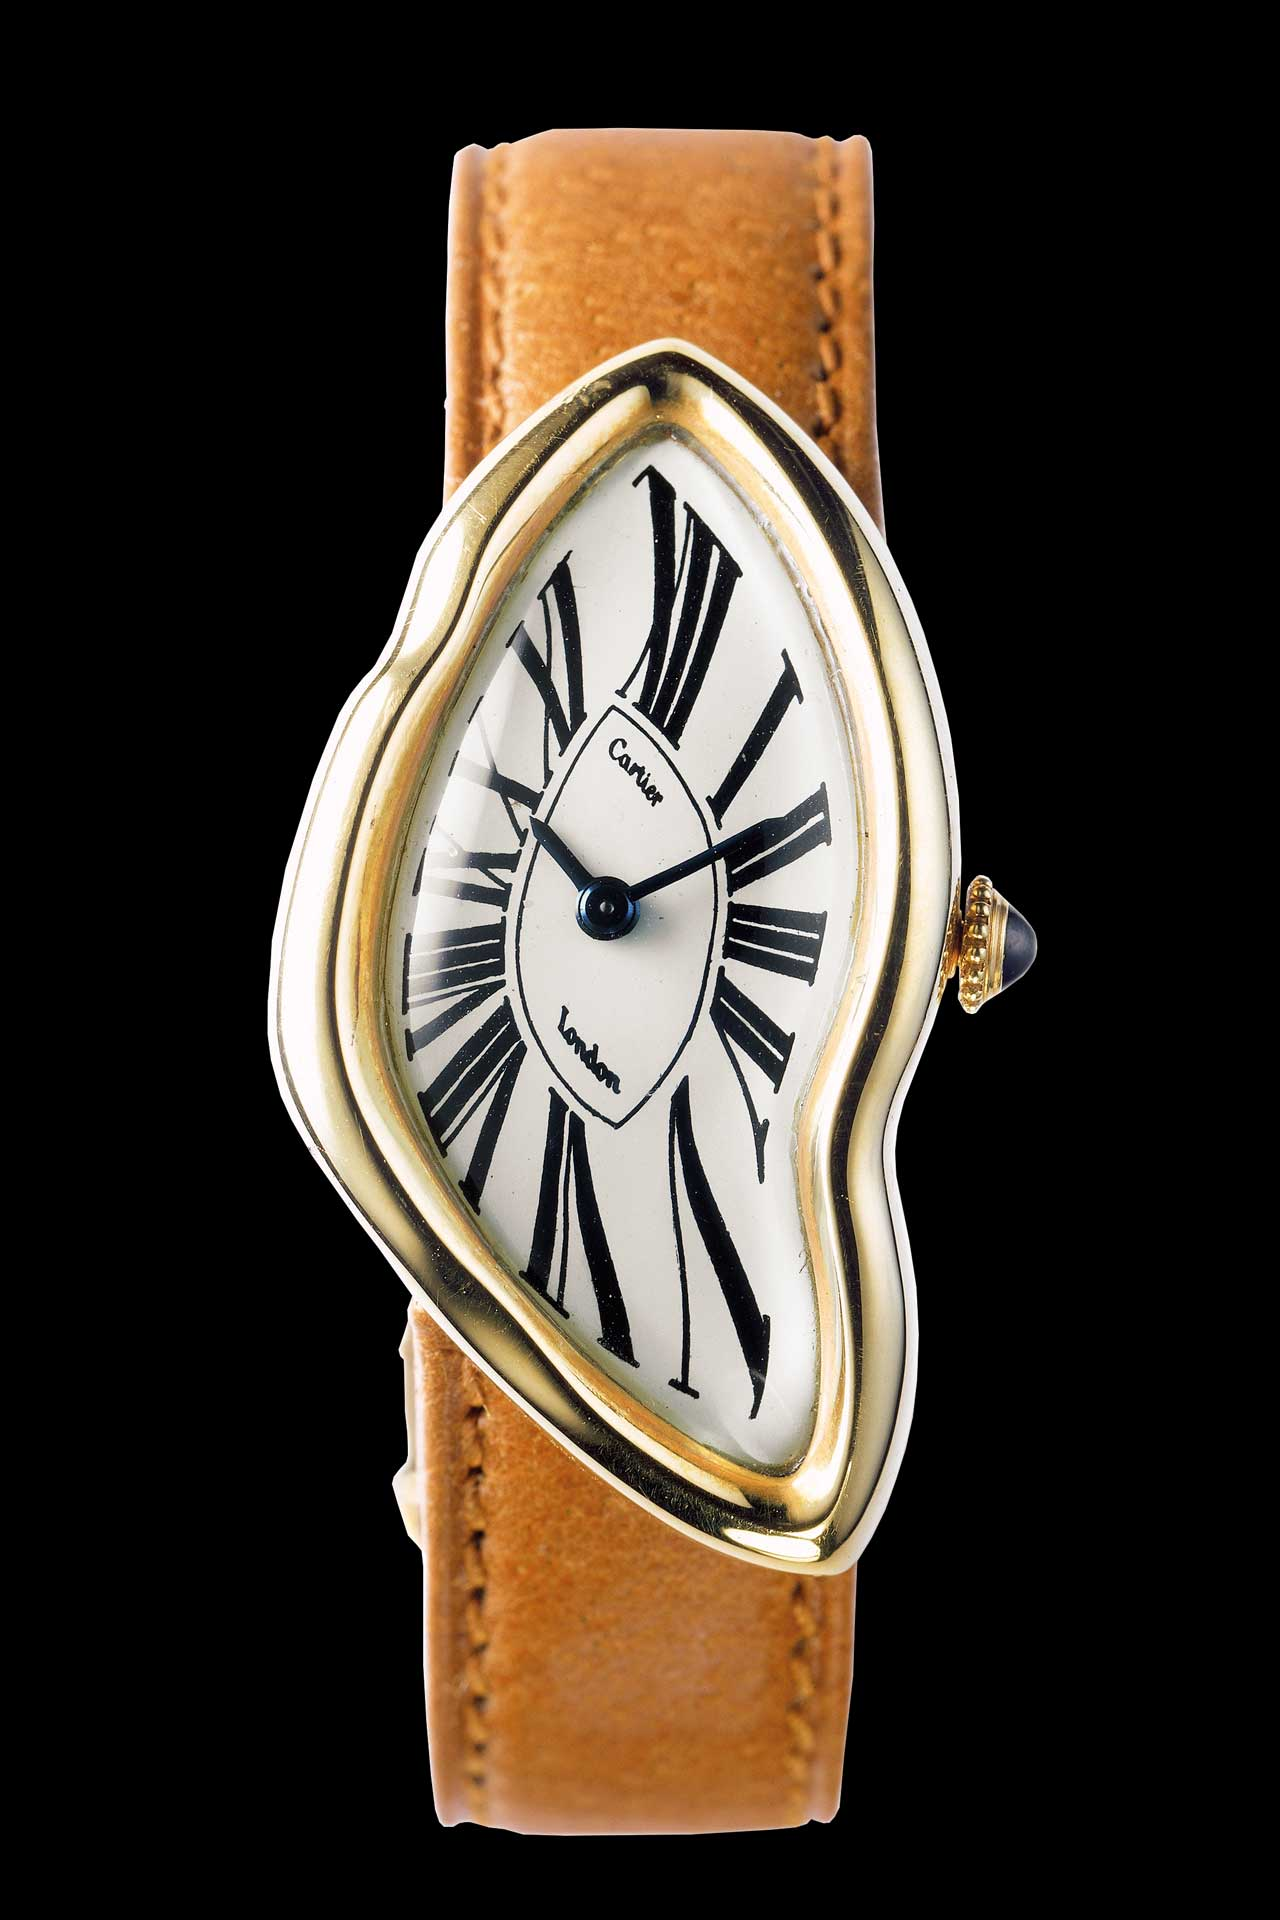 Rolex replica cheap - Cartier Crash Series Leather Strap Limited Edition Lady S Cheap Fake Watches For Sale